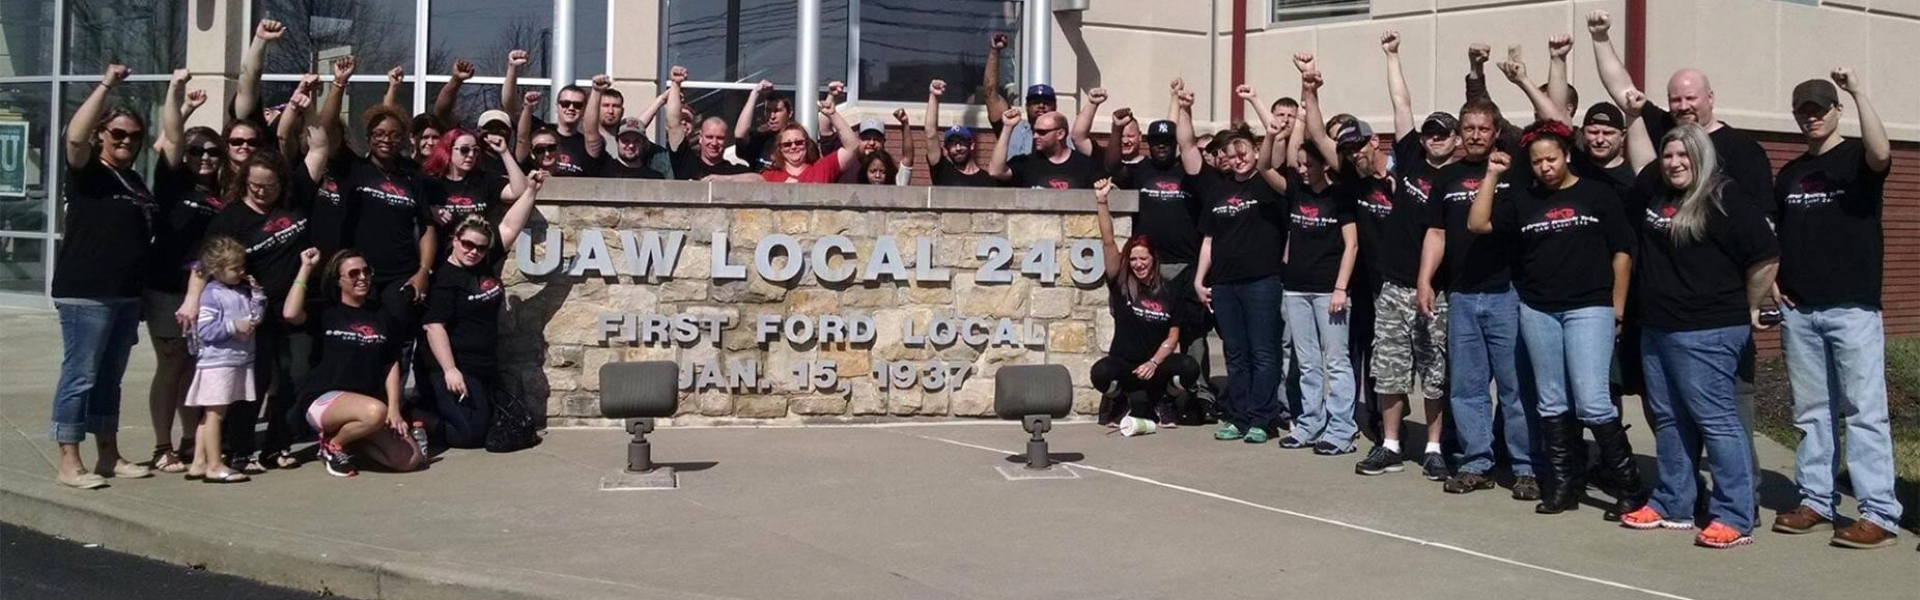 Uaw 249 First Ford Local